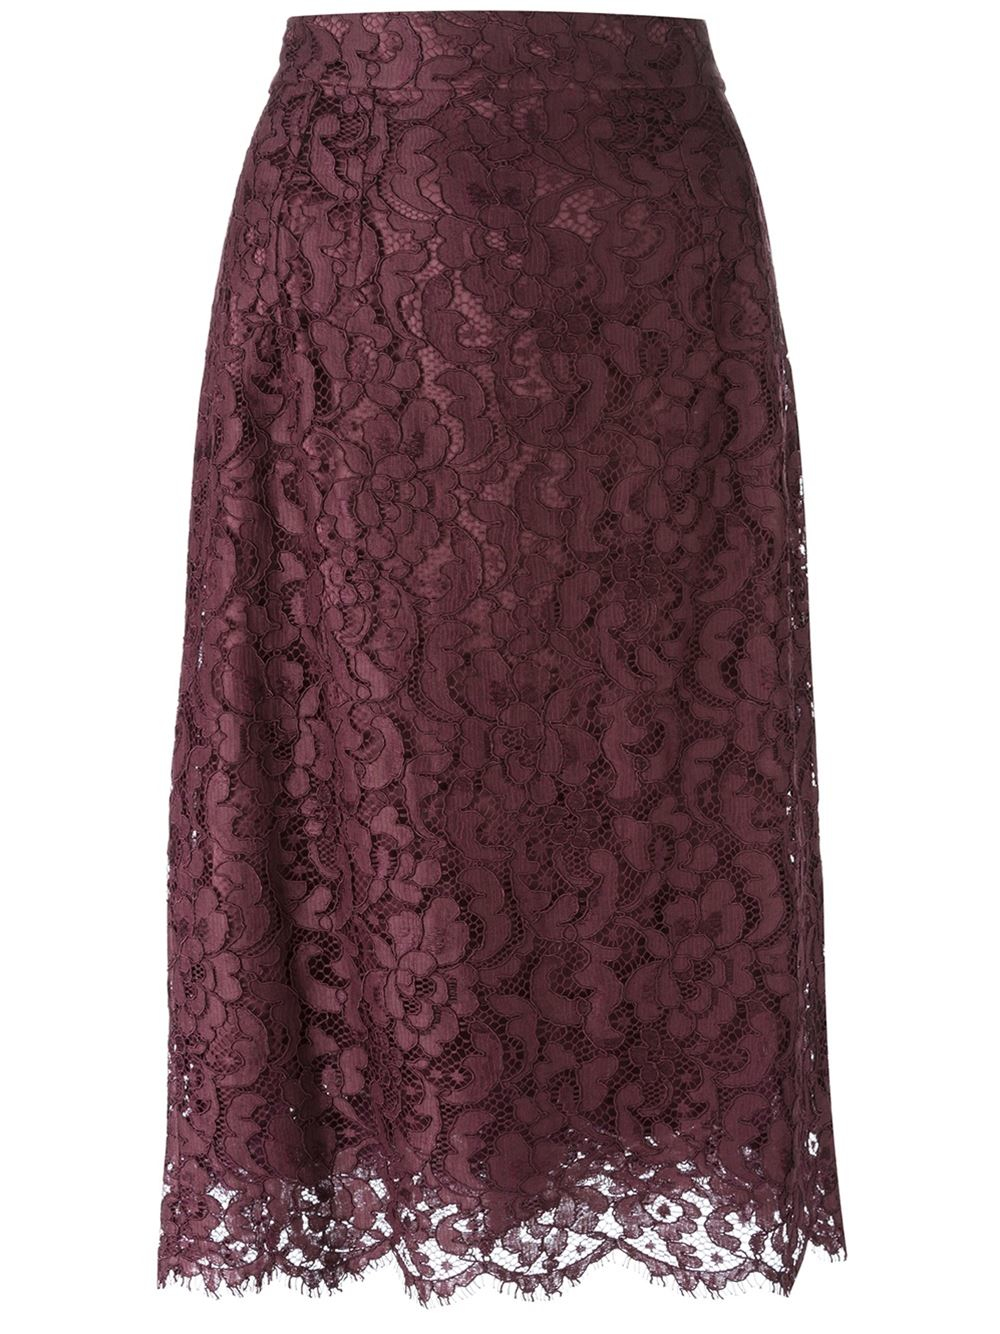 dolce gabbana floral lace midi skirt in lyst